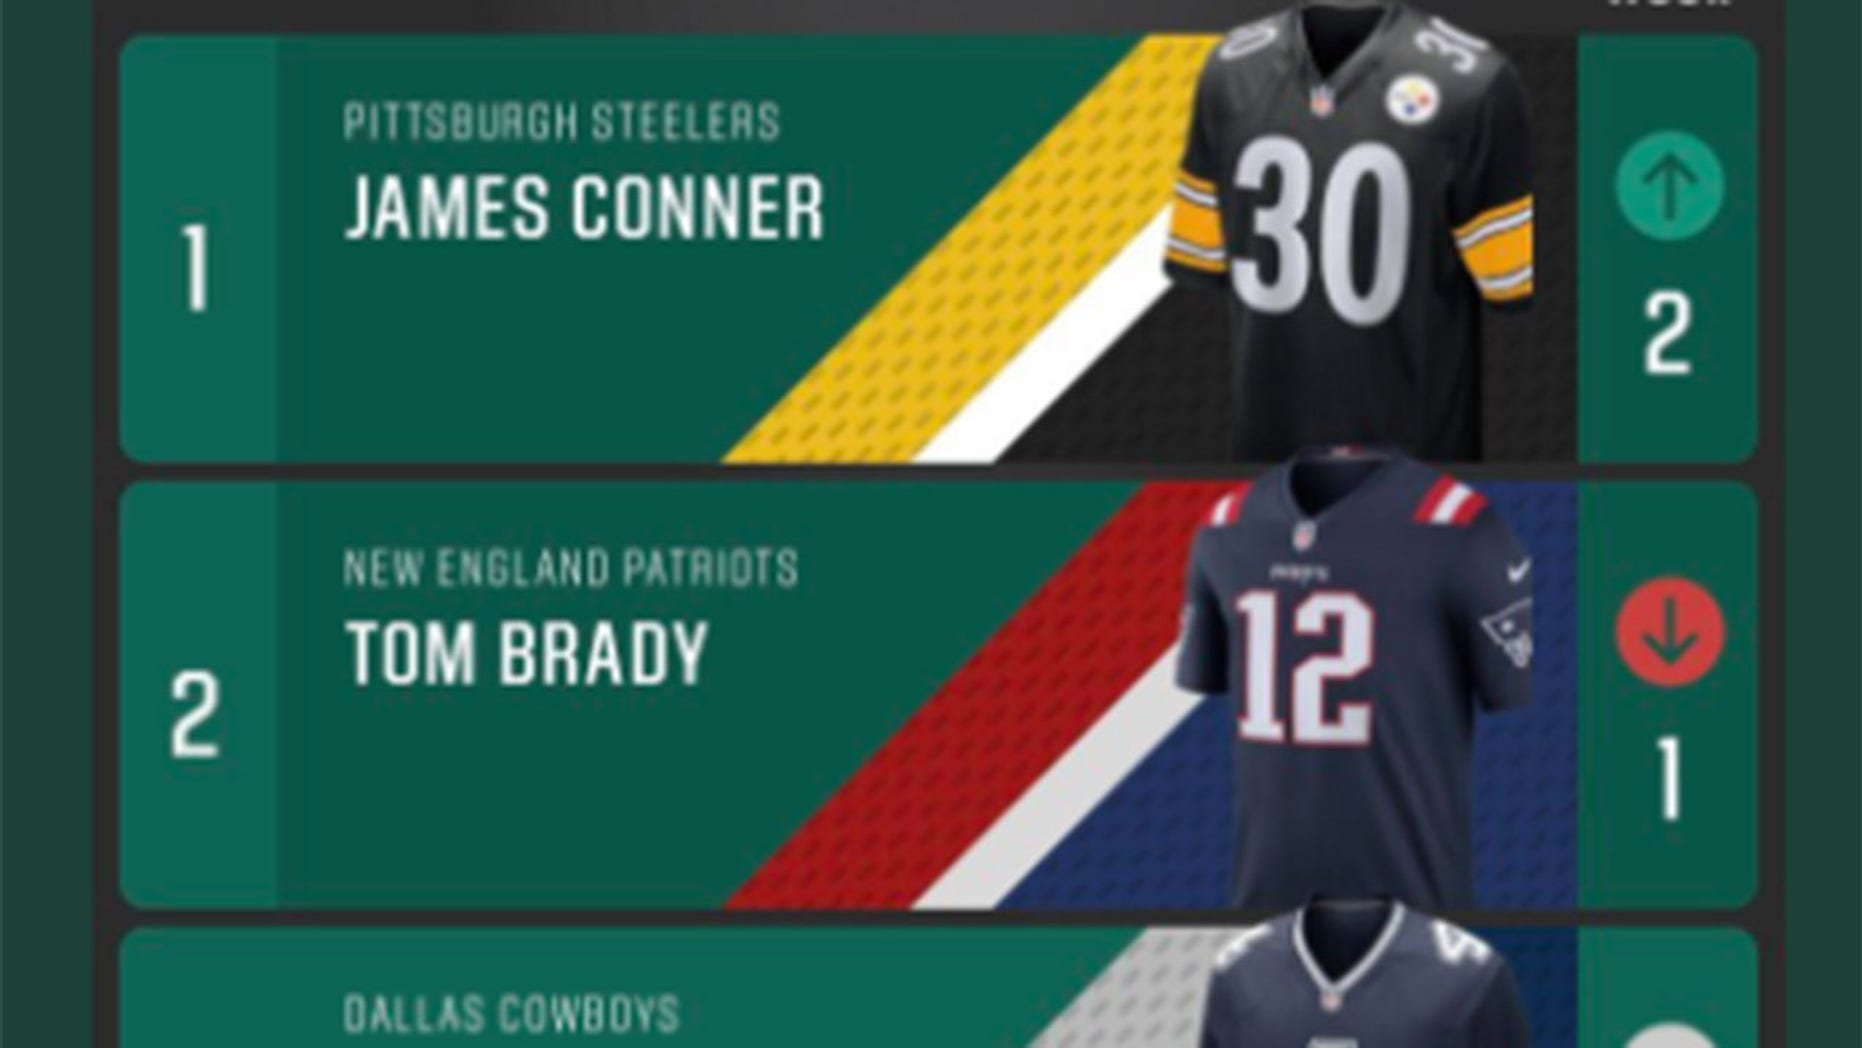 huge selection of 50097 009ff Cancer survivor has top-selling jersey in NFL | Fox News